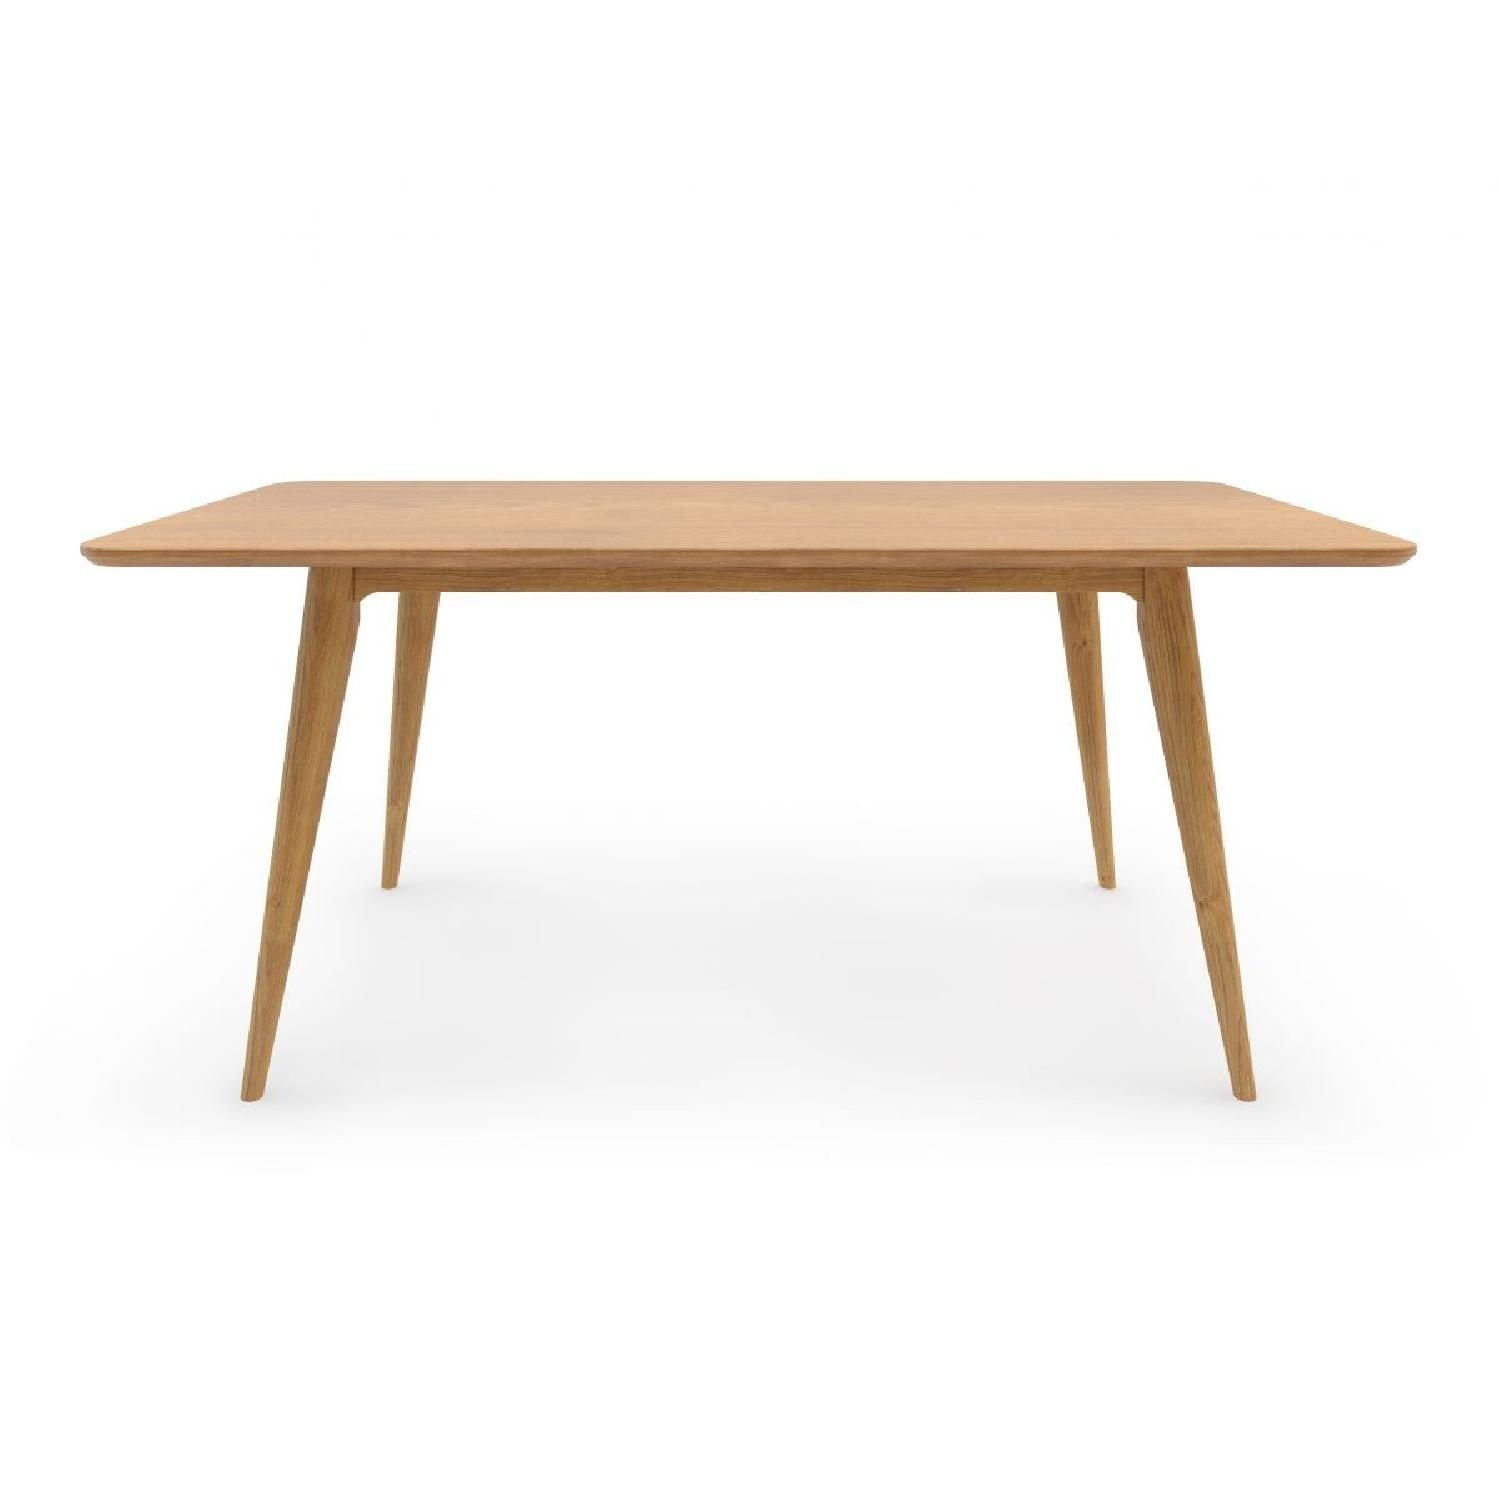 Rove Concepts Sven Dining Table - image-1